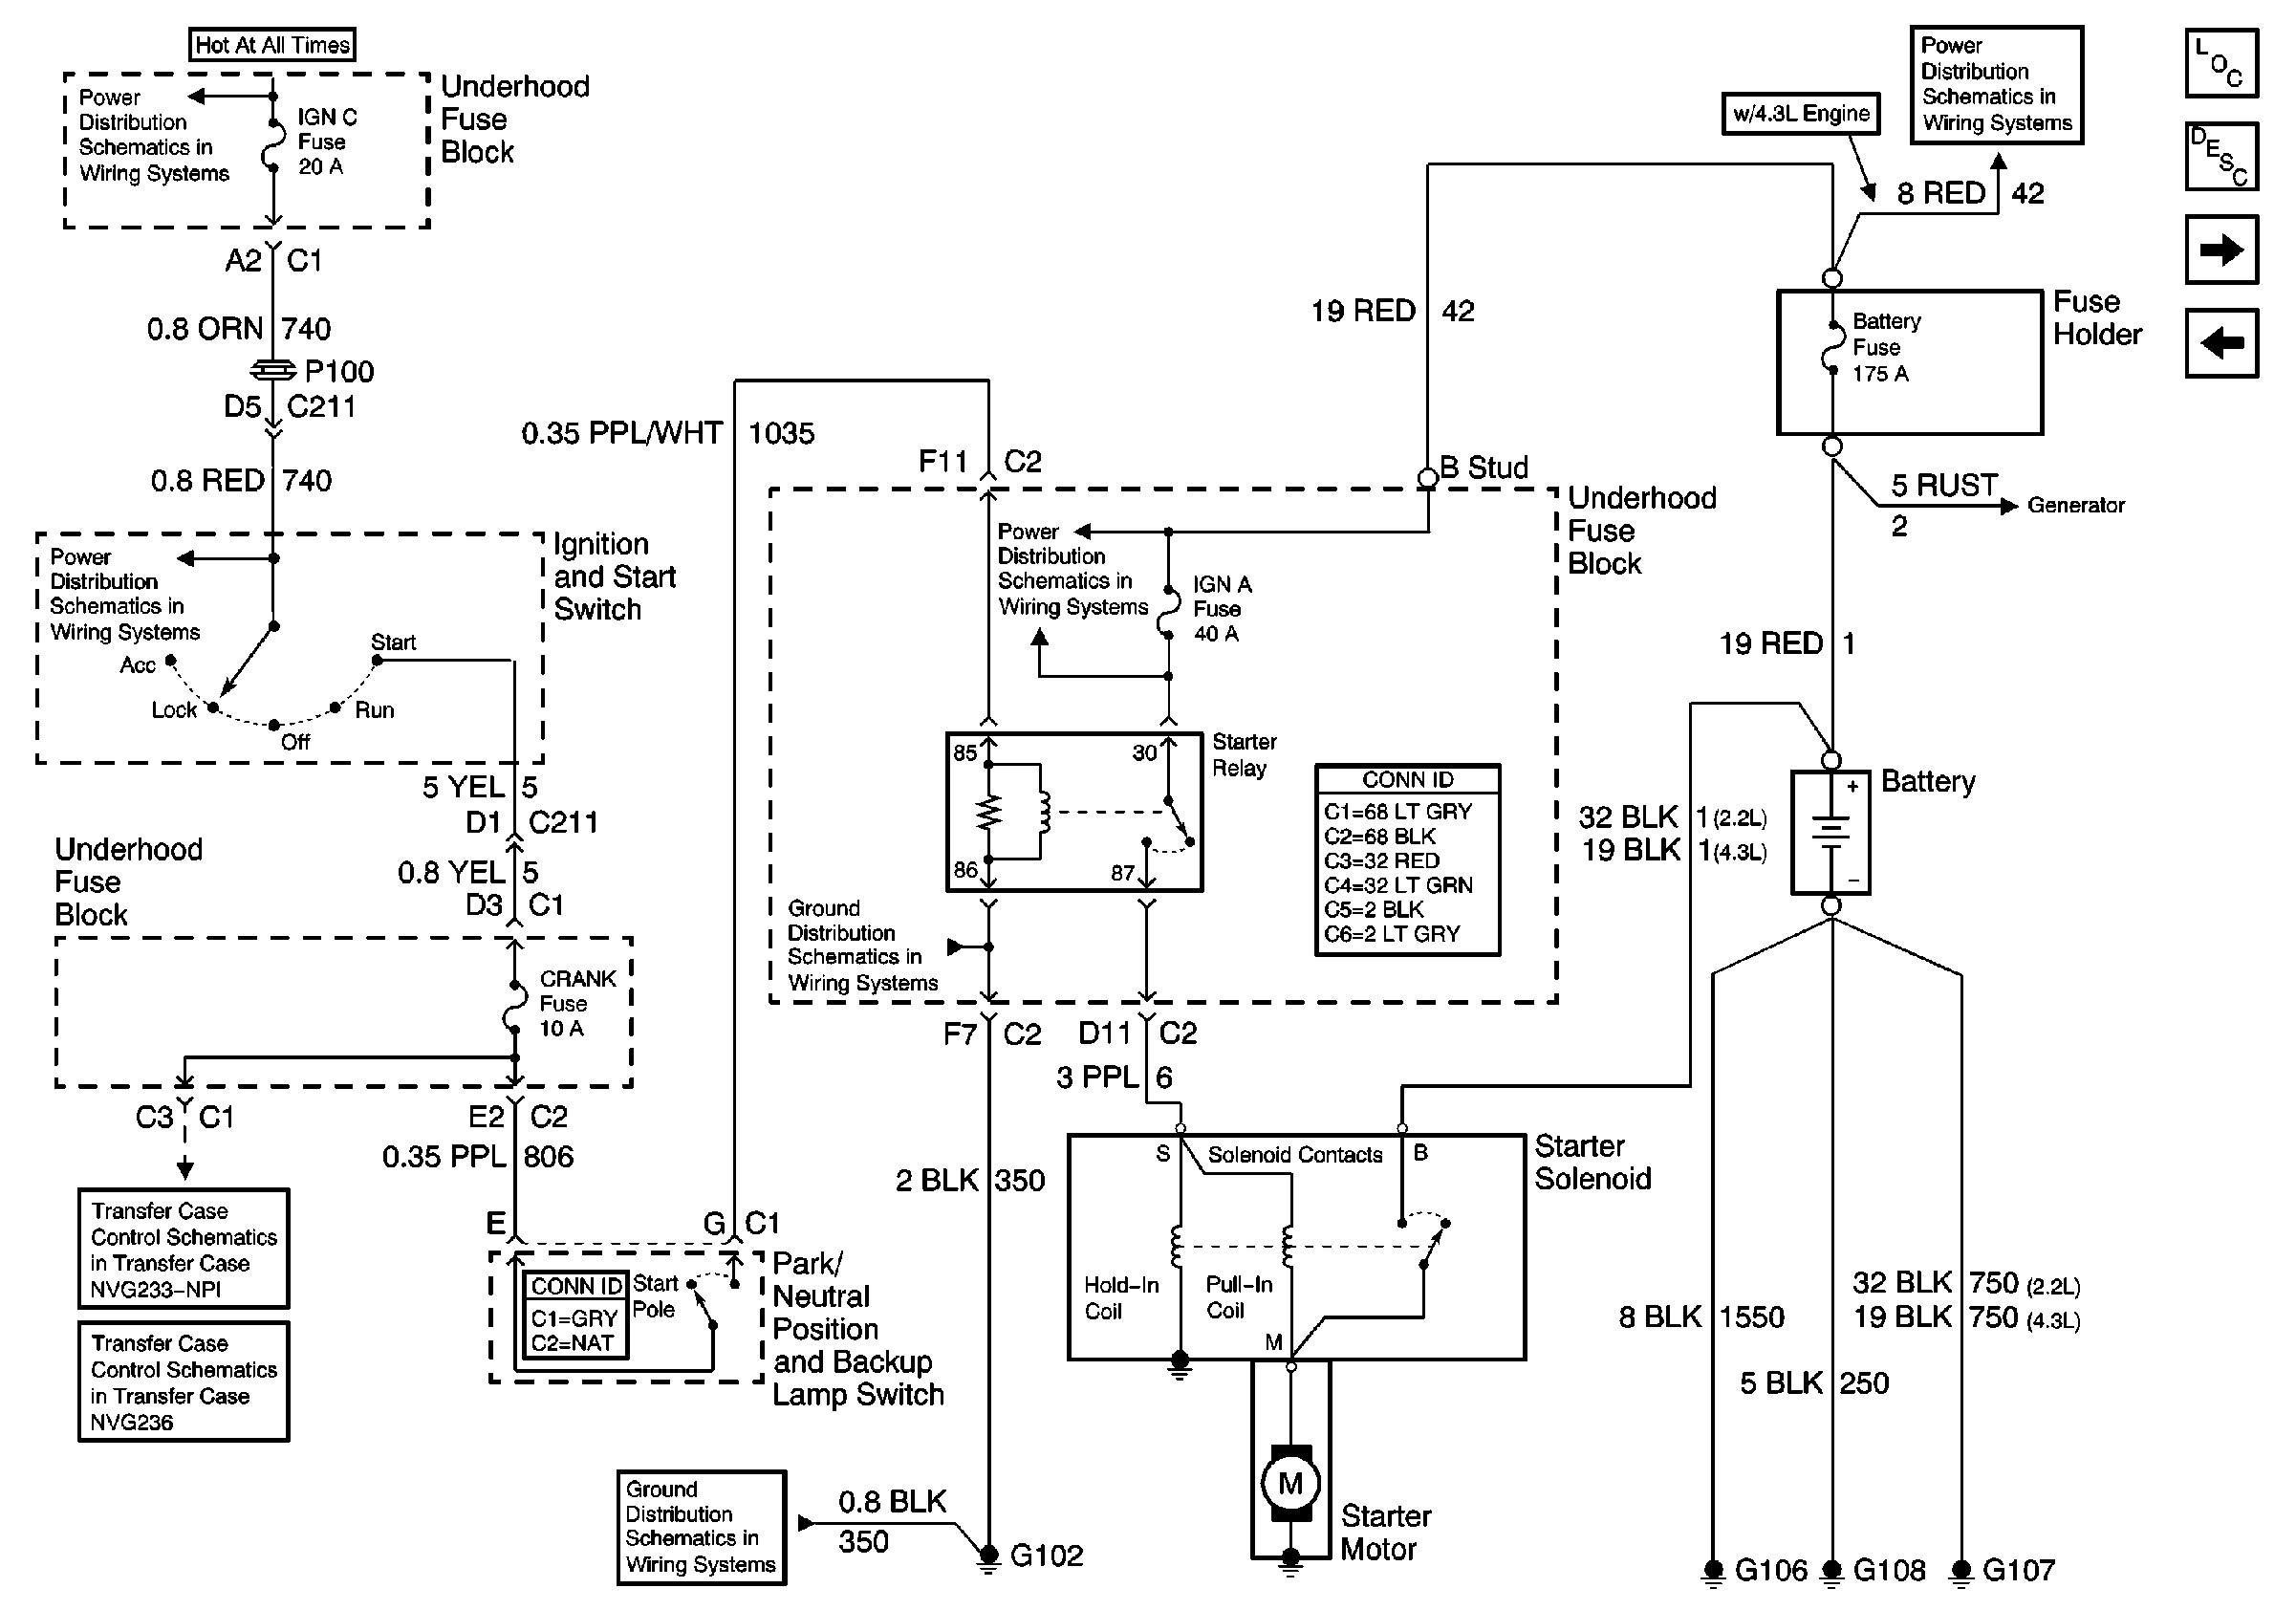 Chevy S10 Tail Light Wiring Diagram Wiring Diagram 2000 Chevy S10 Rear End Wiring Diagram Load Of Chevy S10 Tail Light Wiring Diagram